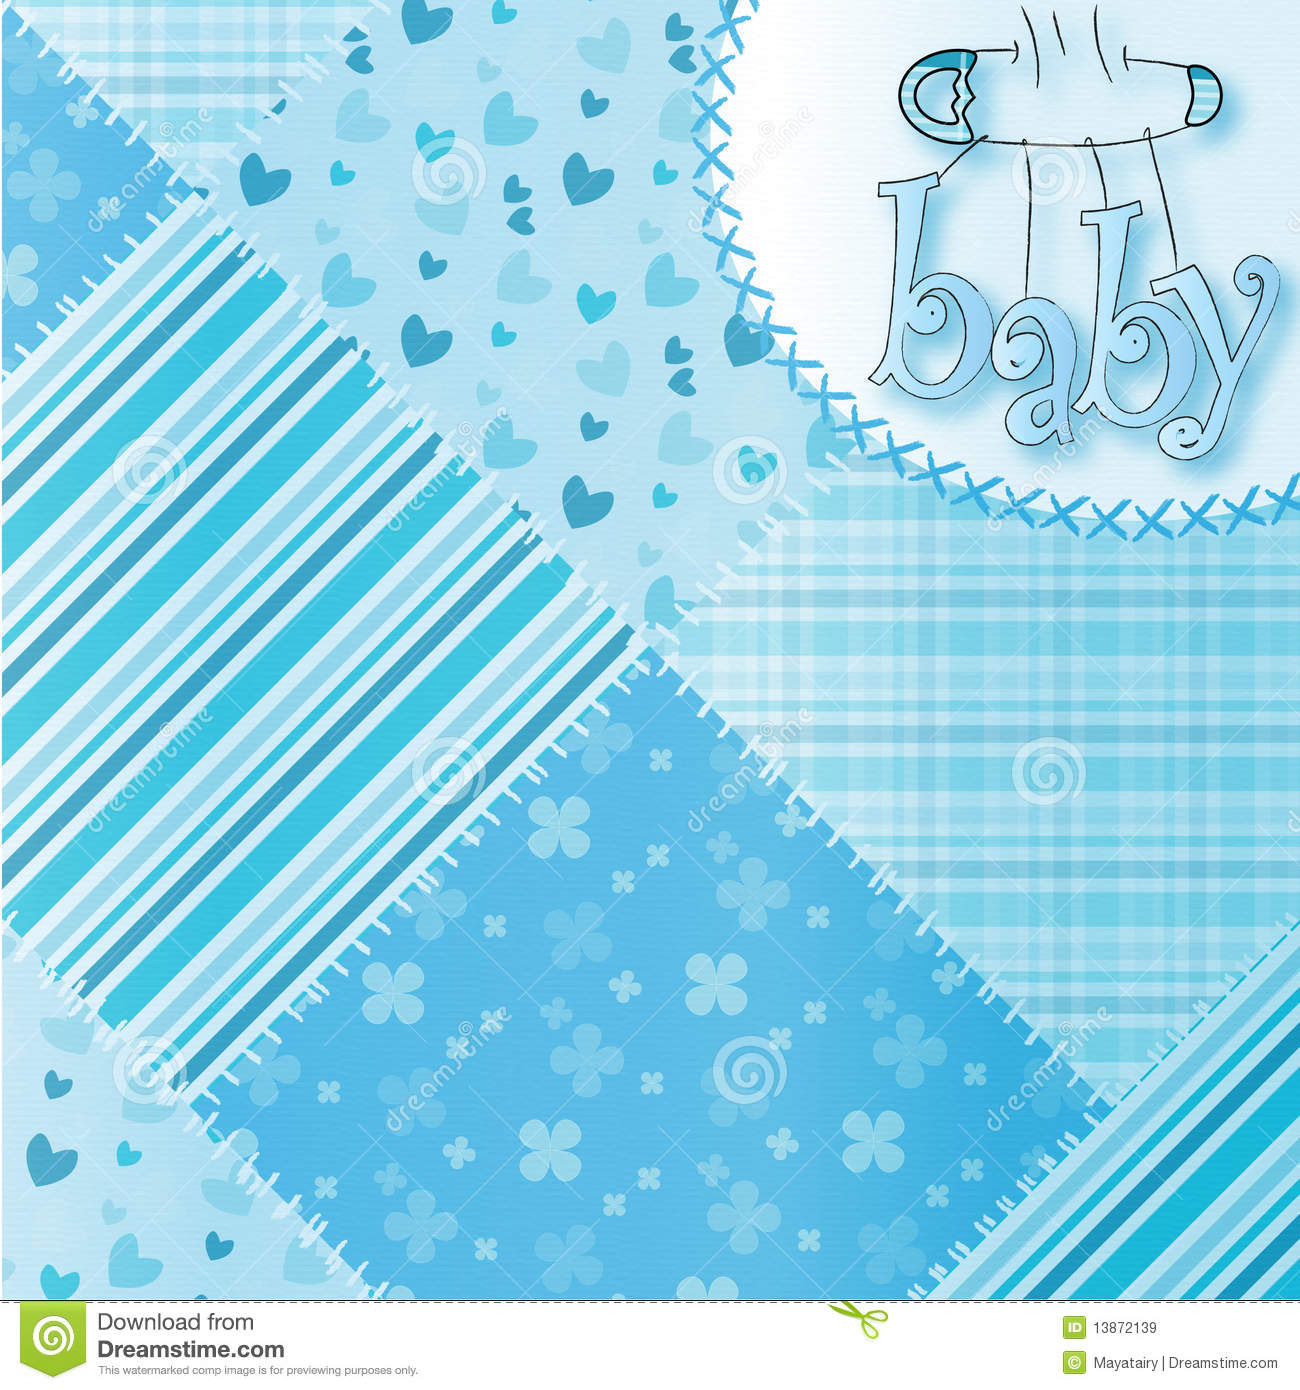 Baby boy background wallpaper baby boy background images baby boy - Announcement Baby Background Birth Boy